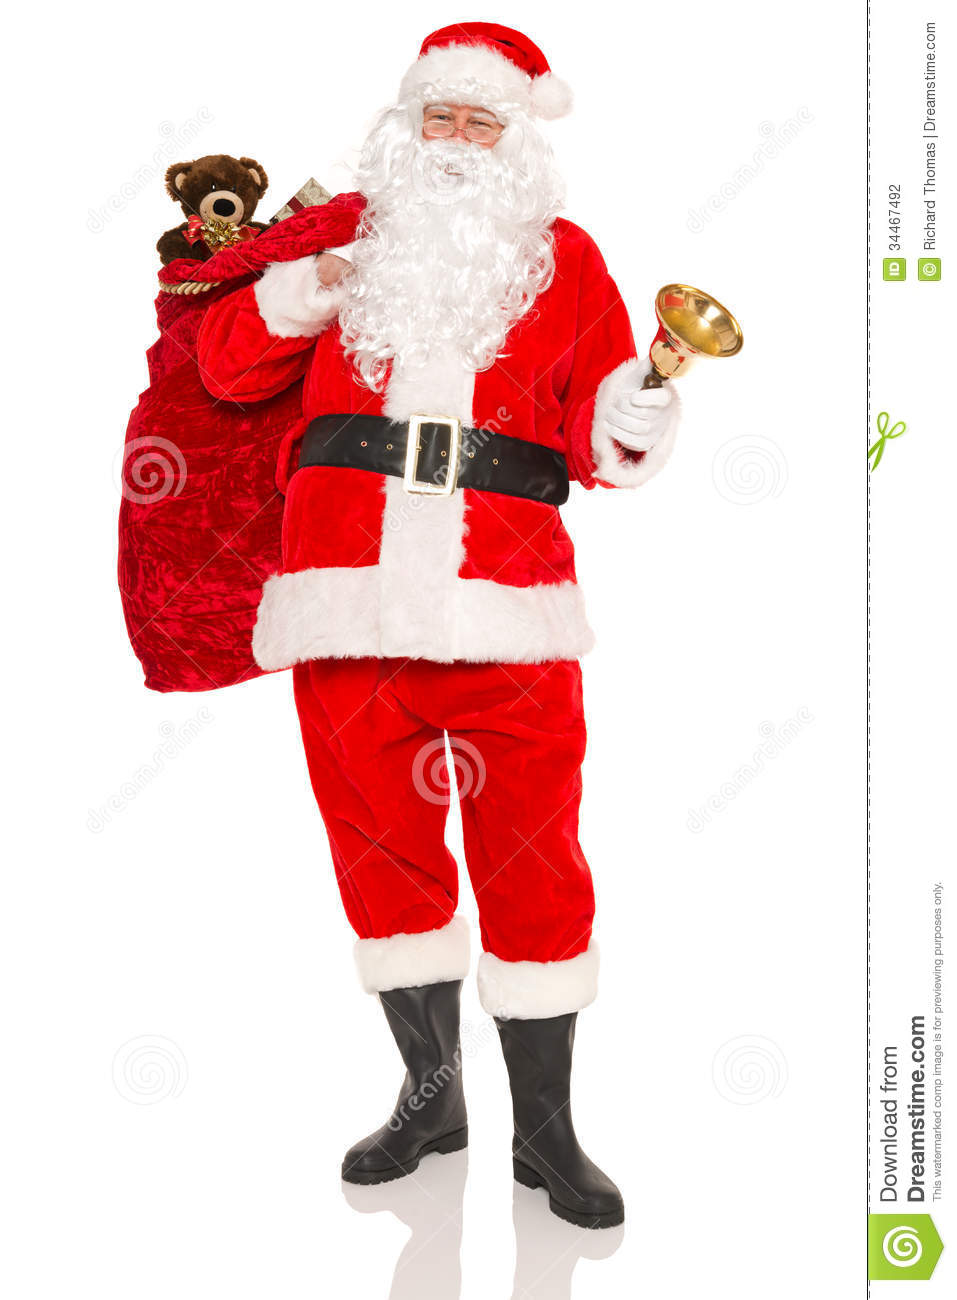 Santa Carrying A Sack Full Of Gifts Isolated Stock Photo - Image of ...